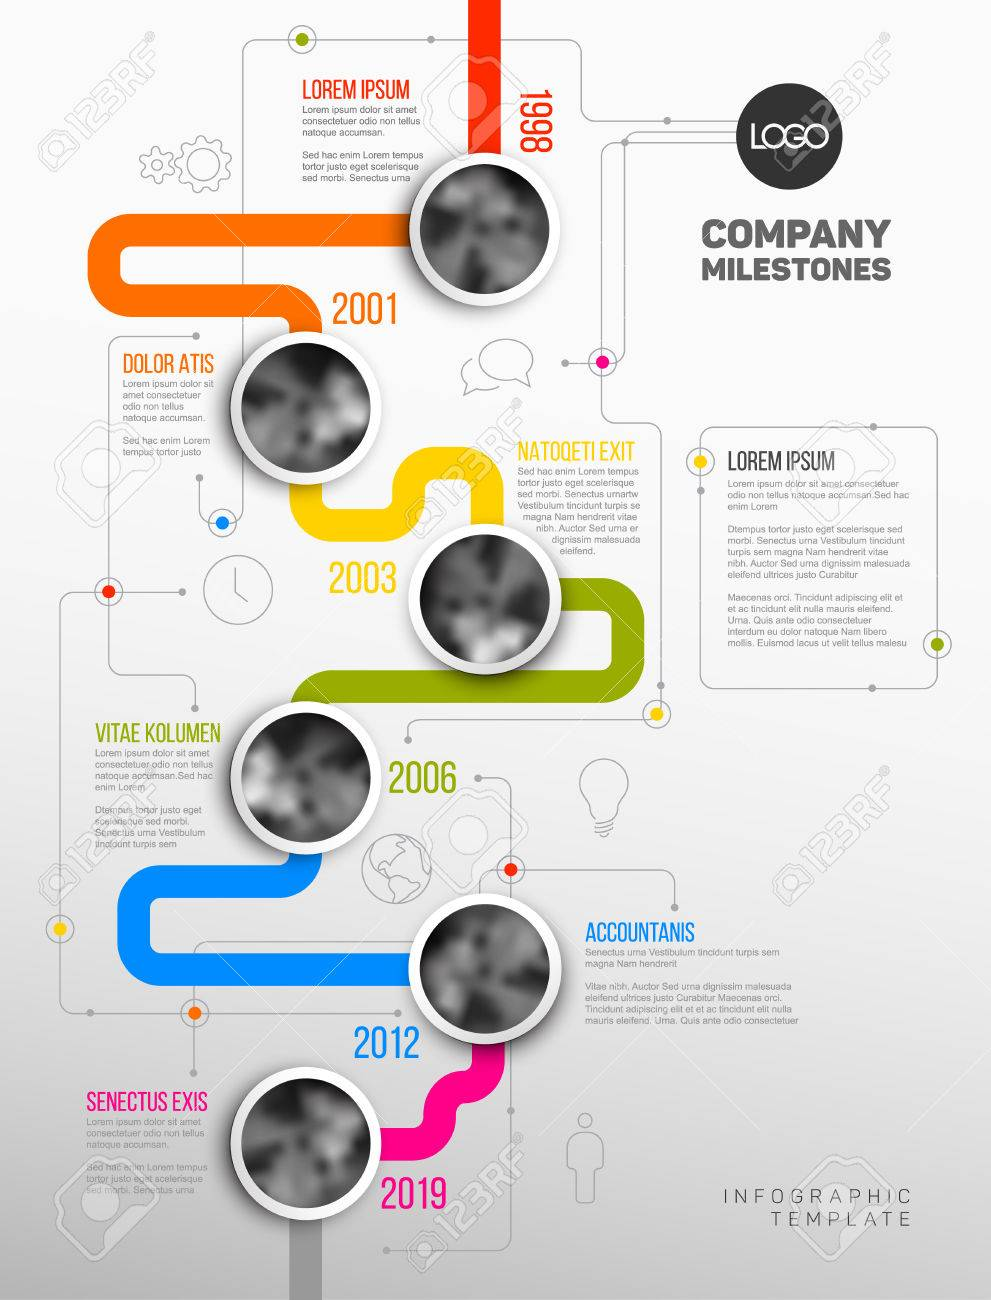 vector infographic company milestones timeline template with